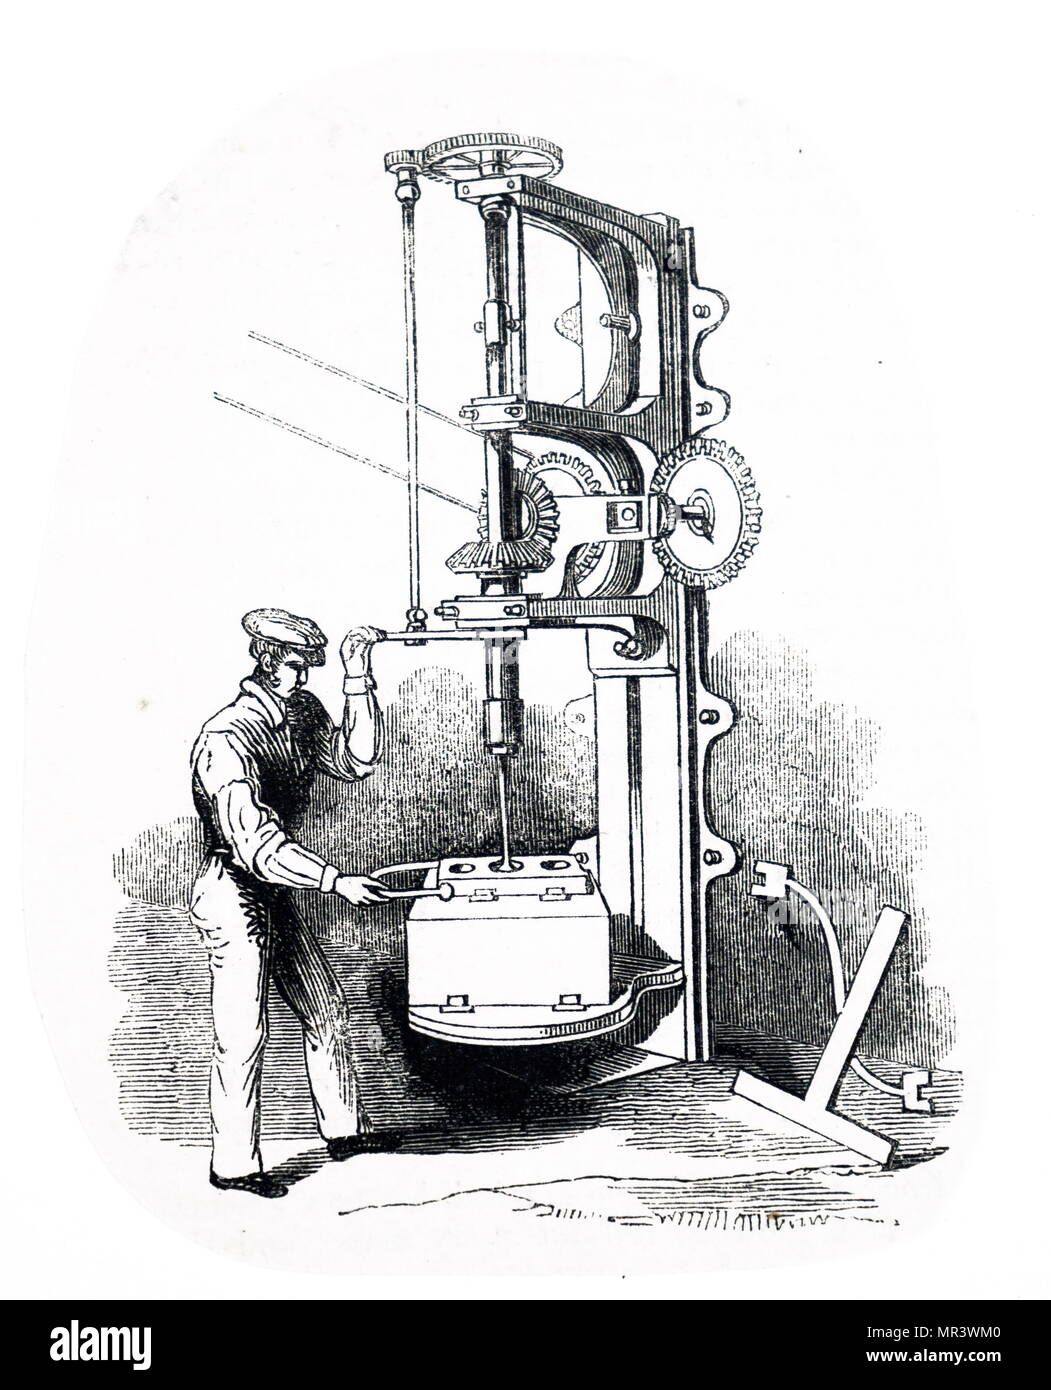 hight resolution of illustration depicting the boring of the cylinder of a steam engine vulcan foundry washington